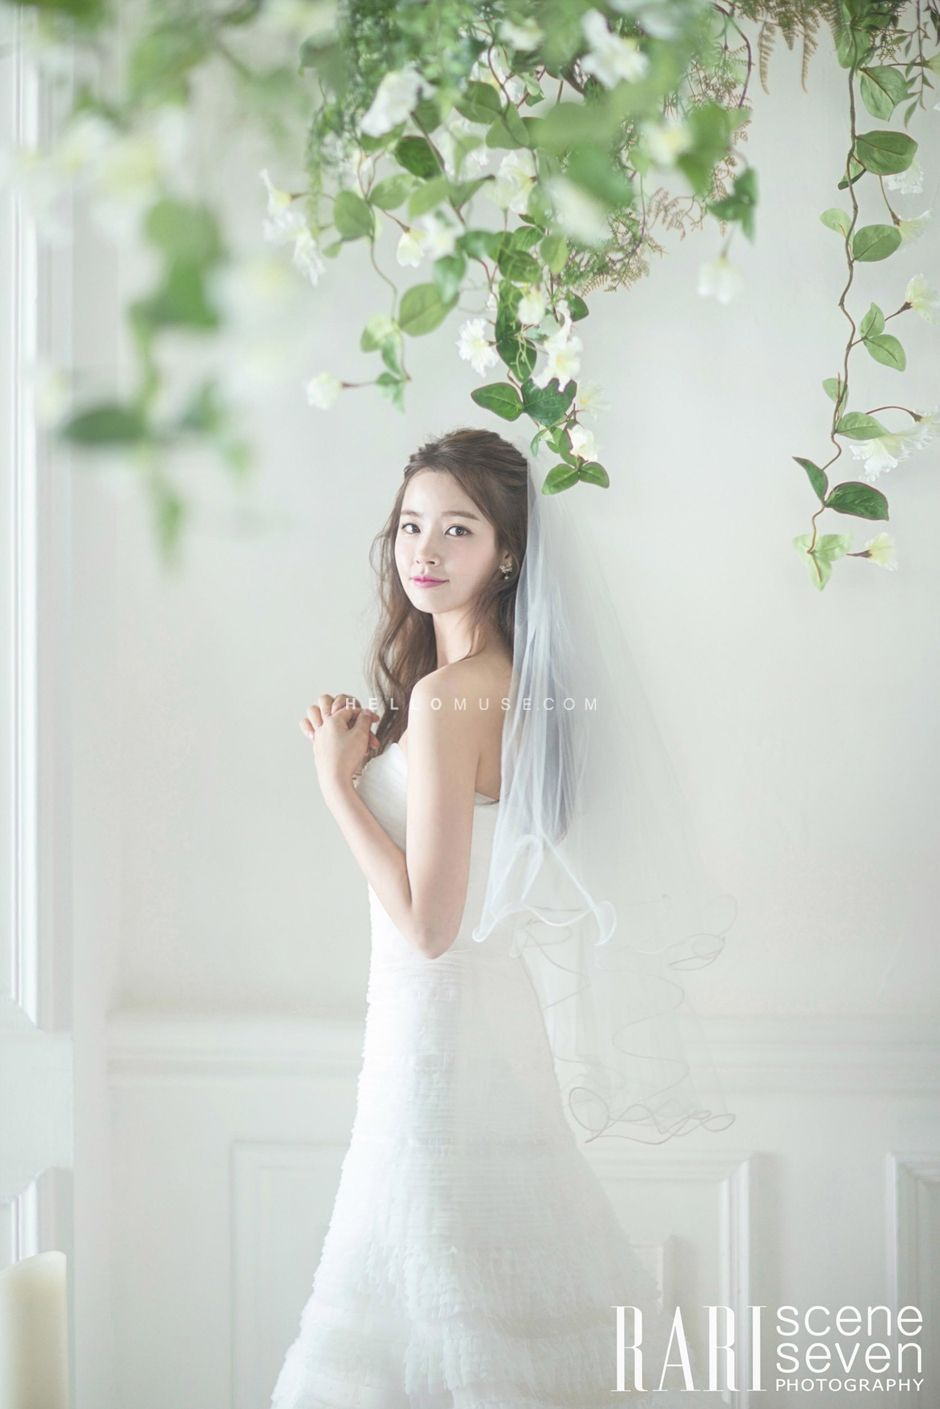 Pin by huiching chuang on 氛圍 in pinterest wedding